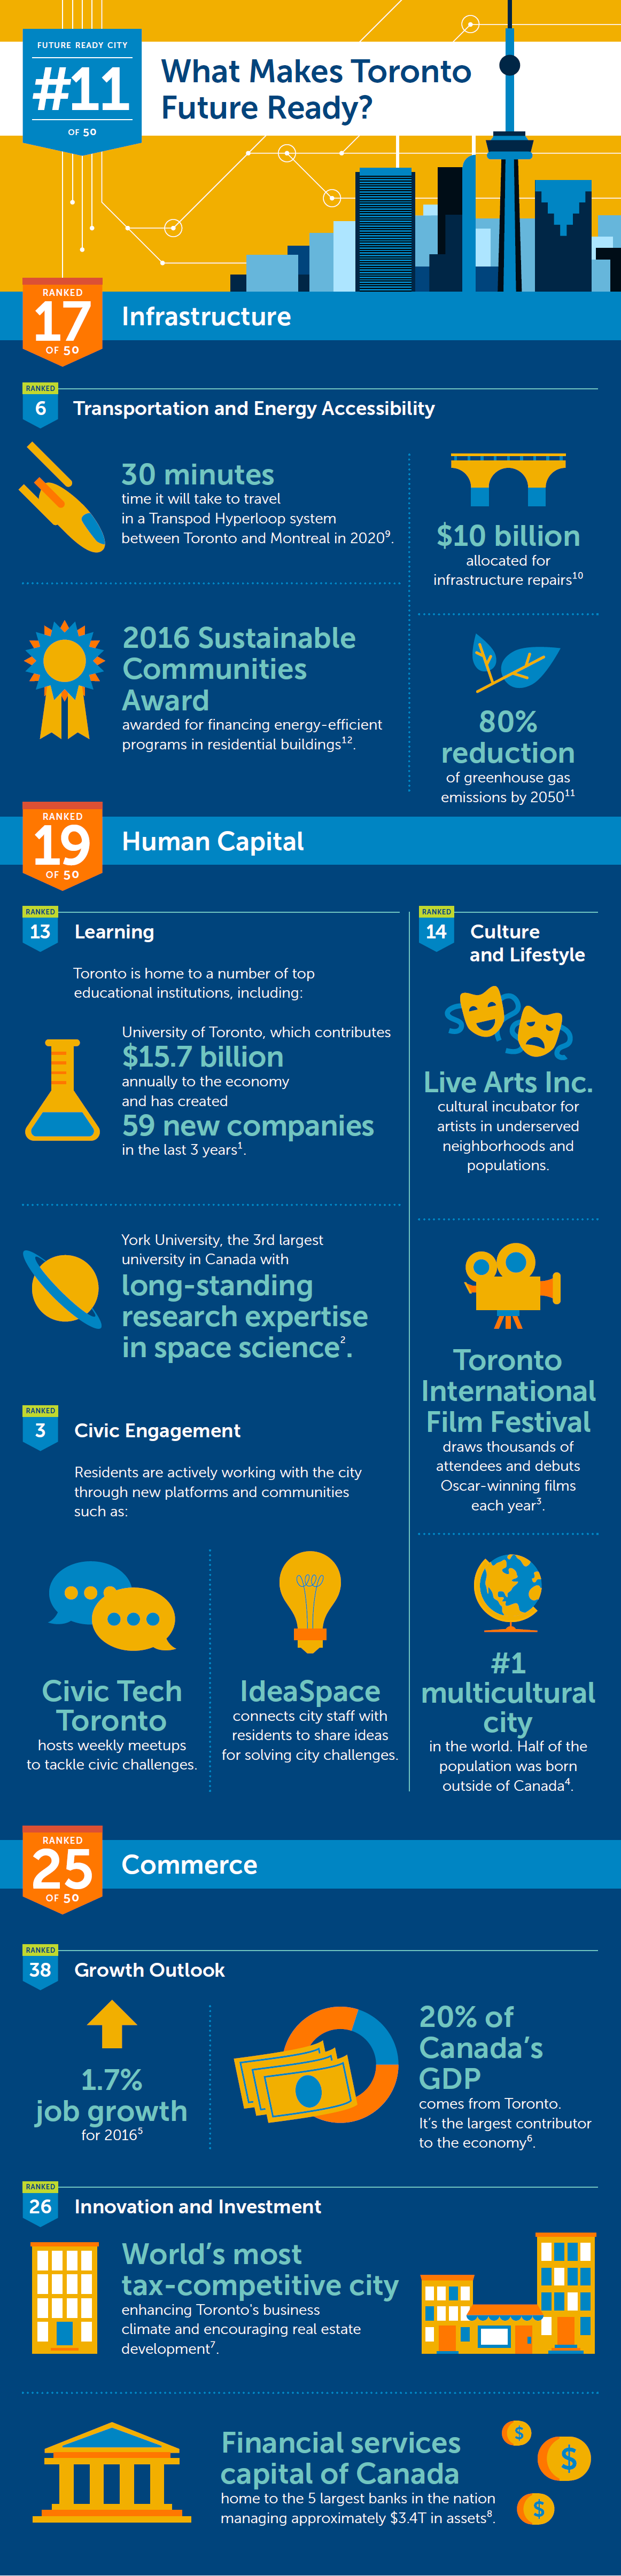 Toronto Future Ready Infographic